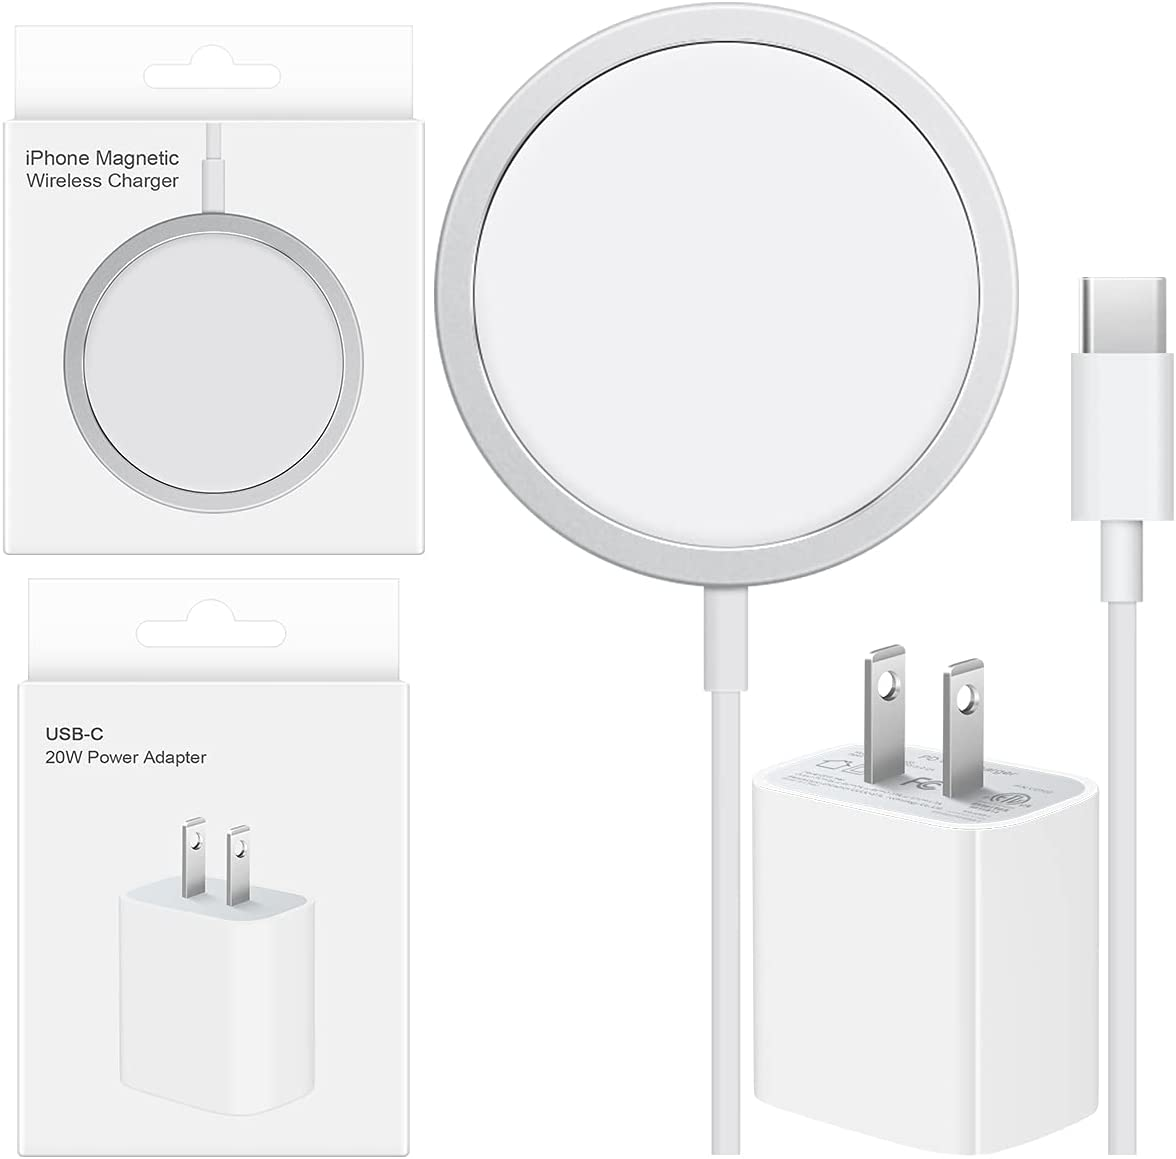 iPhone 12 Fast Magnetic Wireless Charger with USB C PD Fast Charger Compatible with Apple iPhone 12/12 Pro/12 Mini/12 Pro Max/AirPods Pro